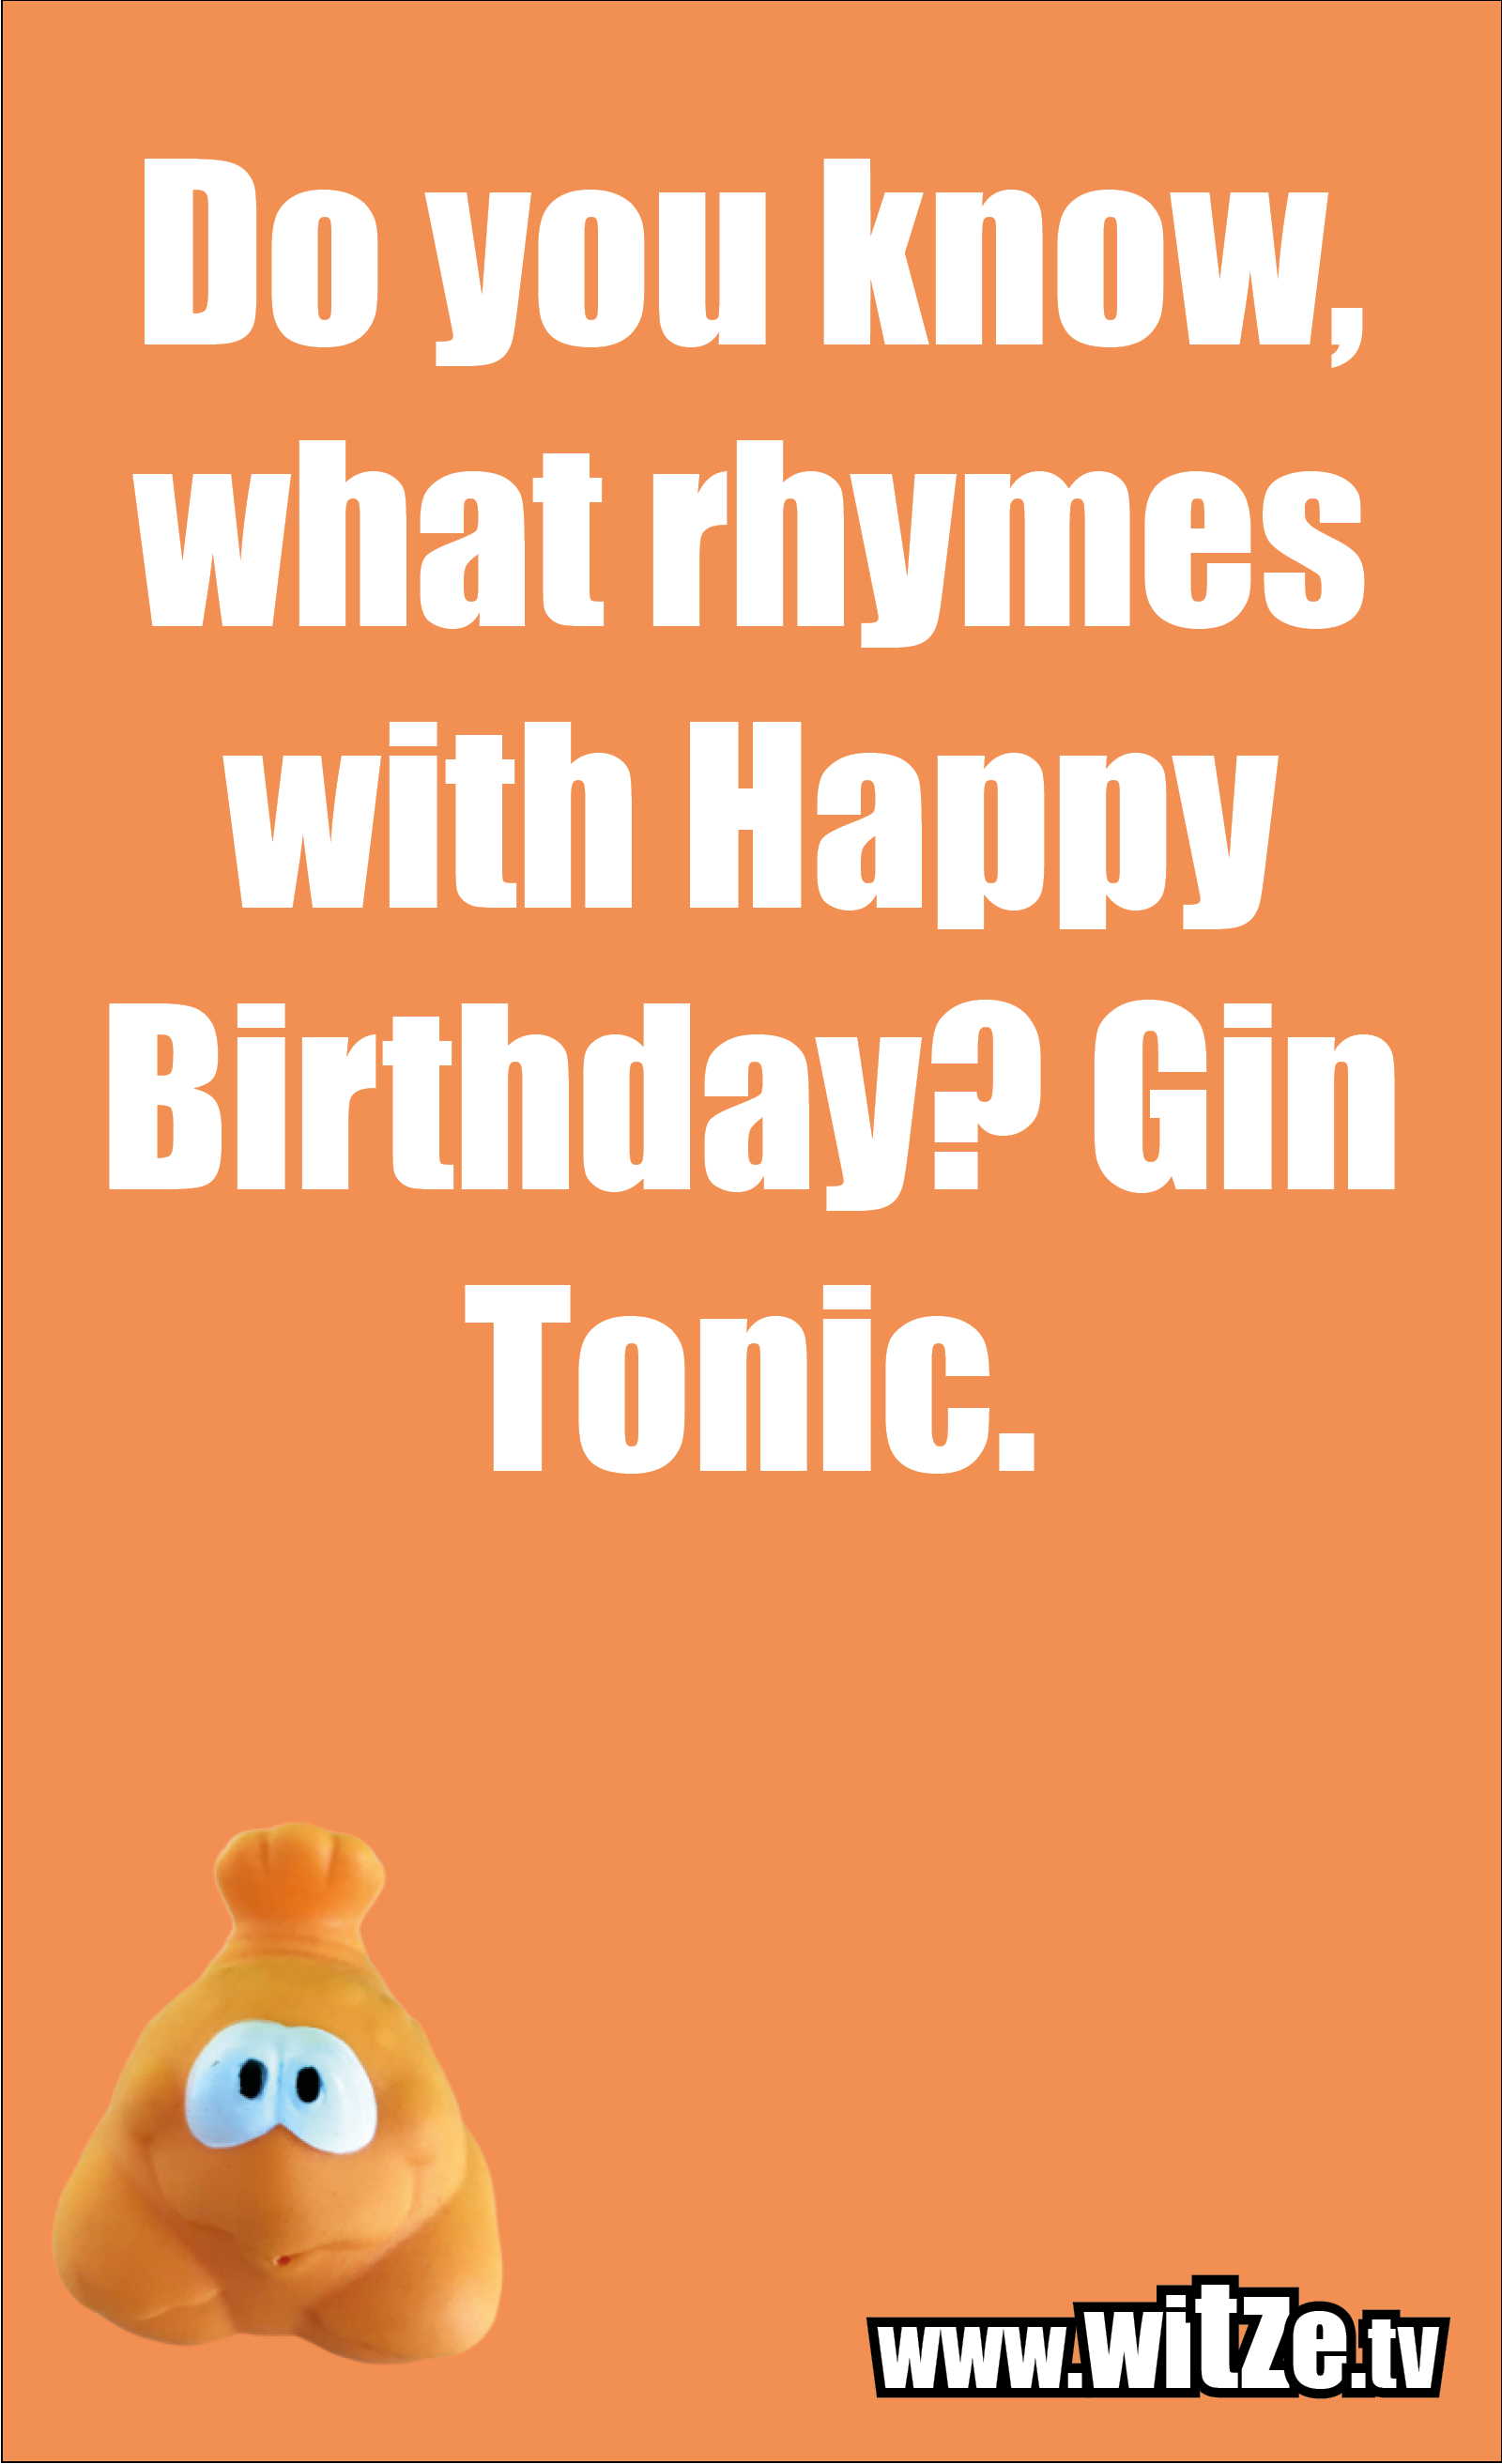 Lustige Geburtstagswünsche: Do you know, what rhymes with Happy Birthday? Gin Tonic.